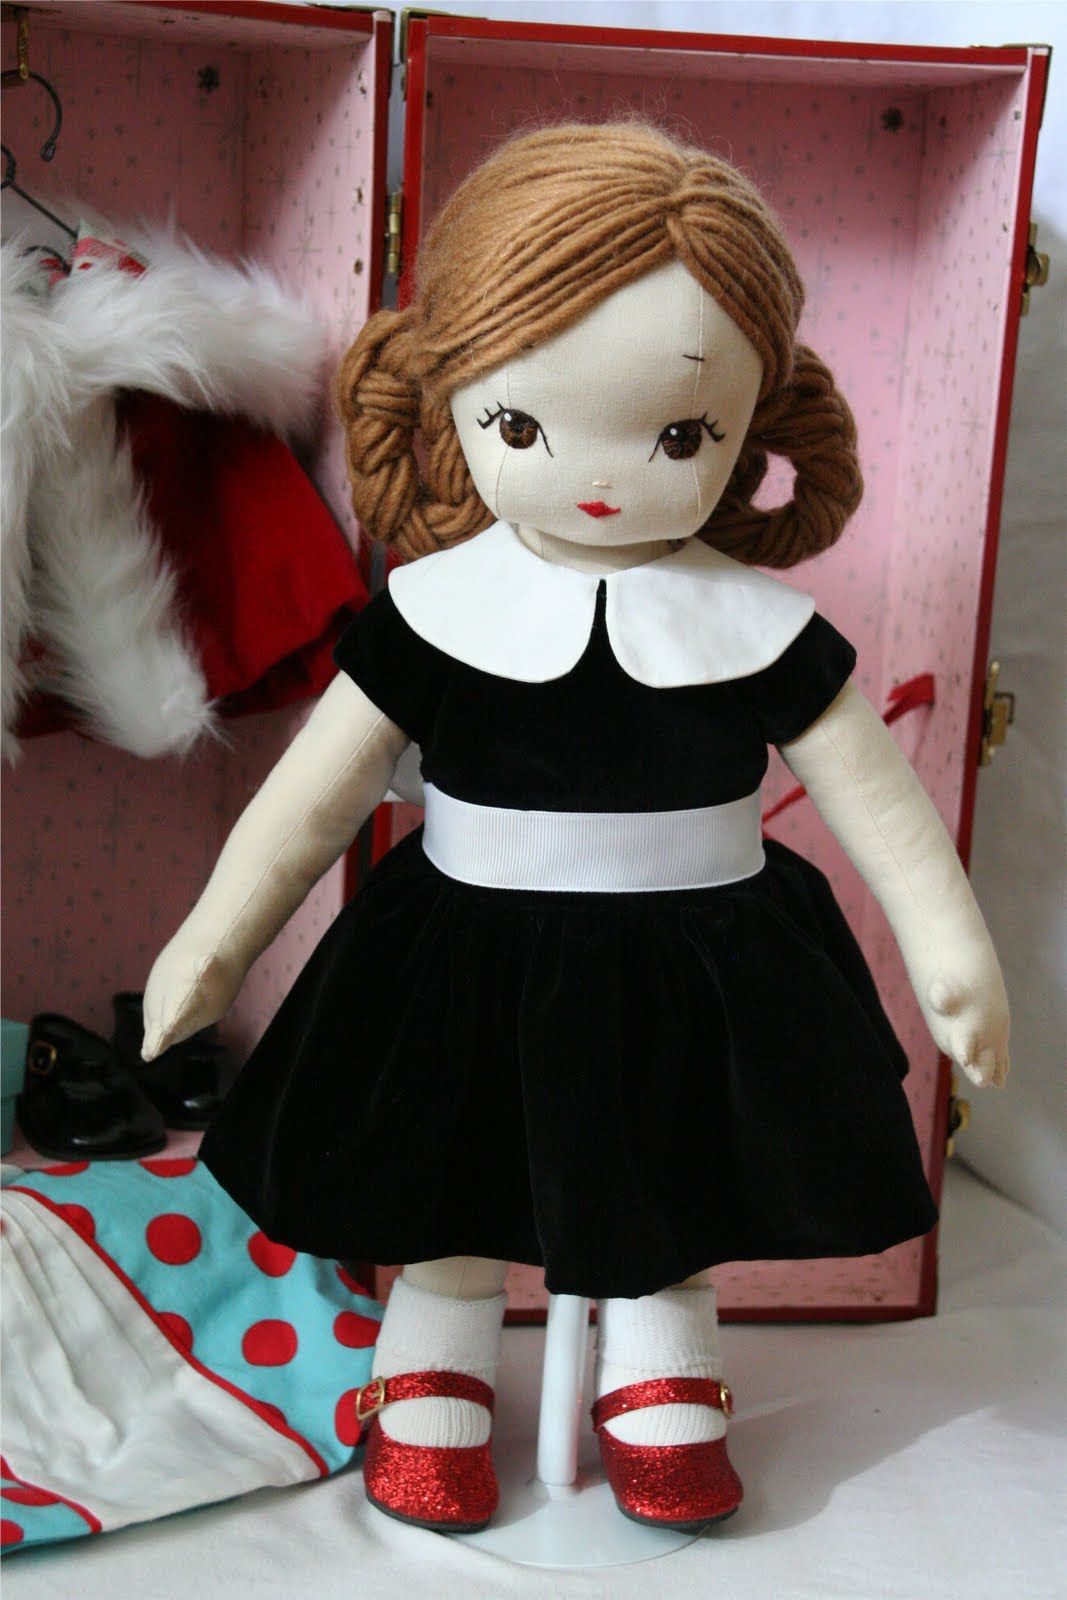 dollsewing cloth doll collectible doll Louise doll rag doll unique doll entirely made of fabric